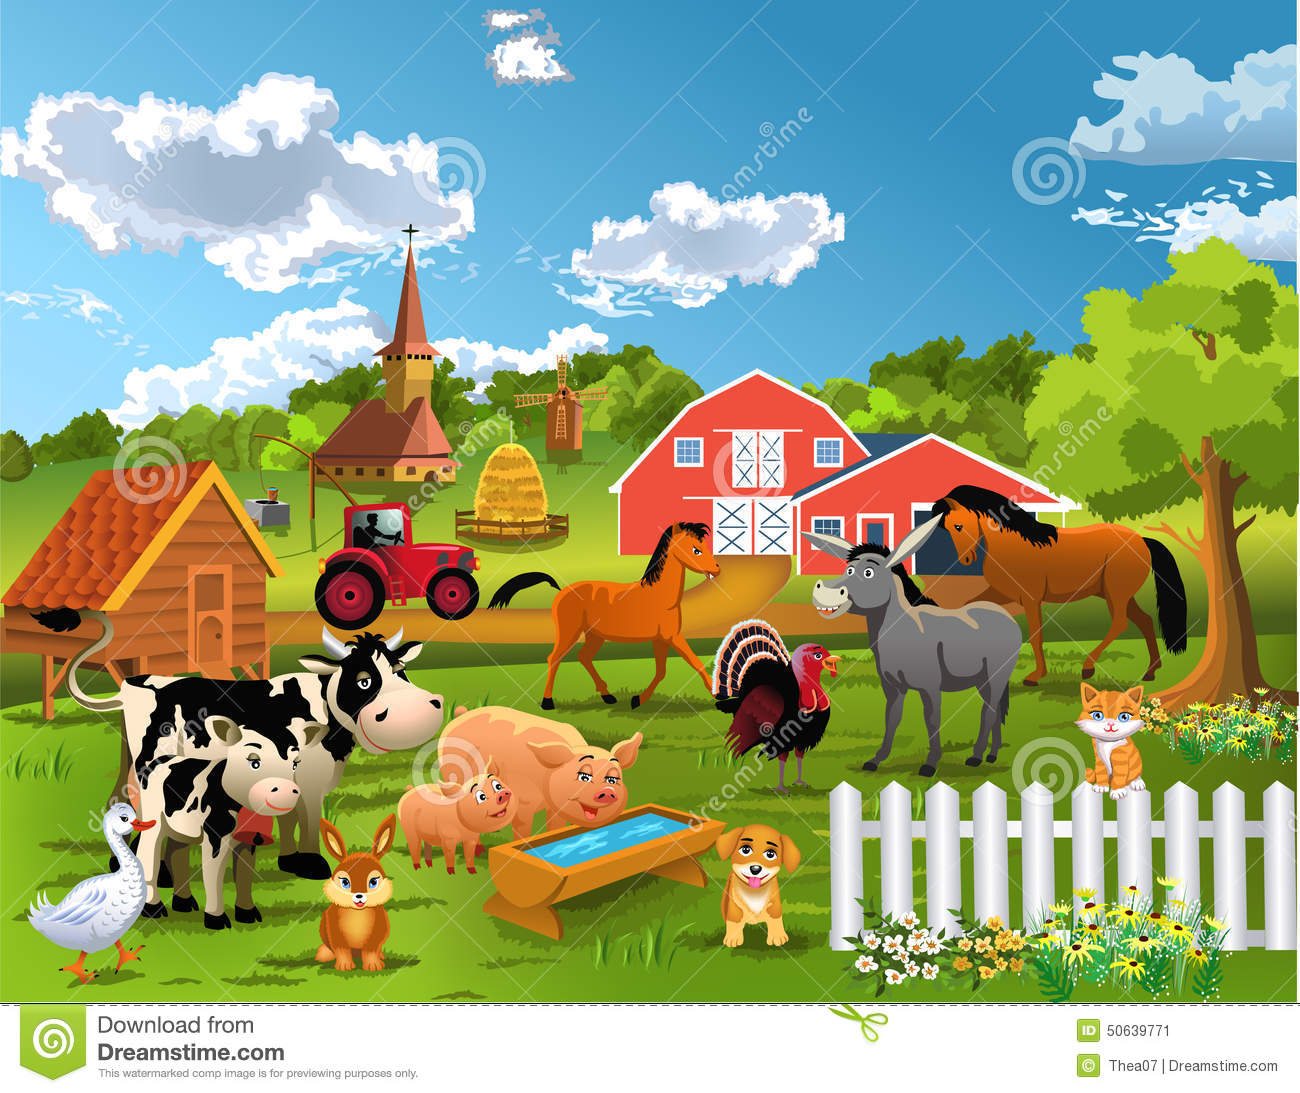 Vector Illustration Of Happy Farm Animals Living Peacefully Together With A Barn In The Background